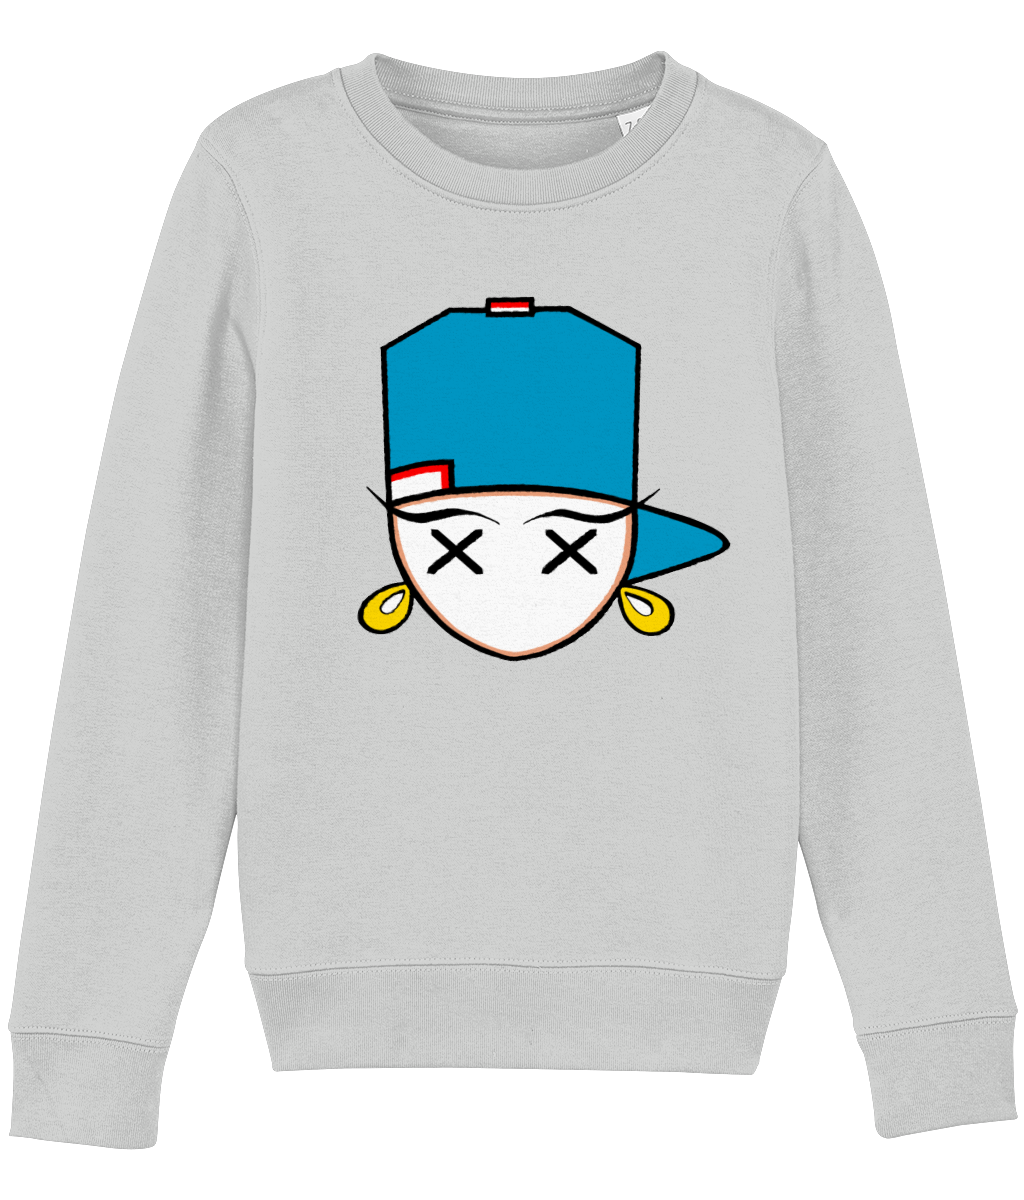 kids sweatshirt Mini Changer 14 blue girl